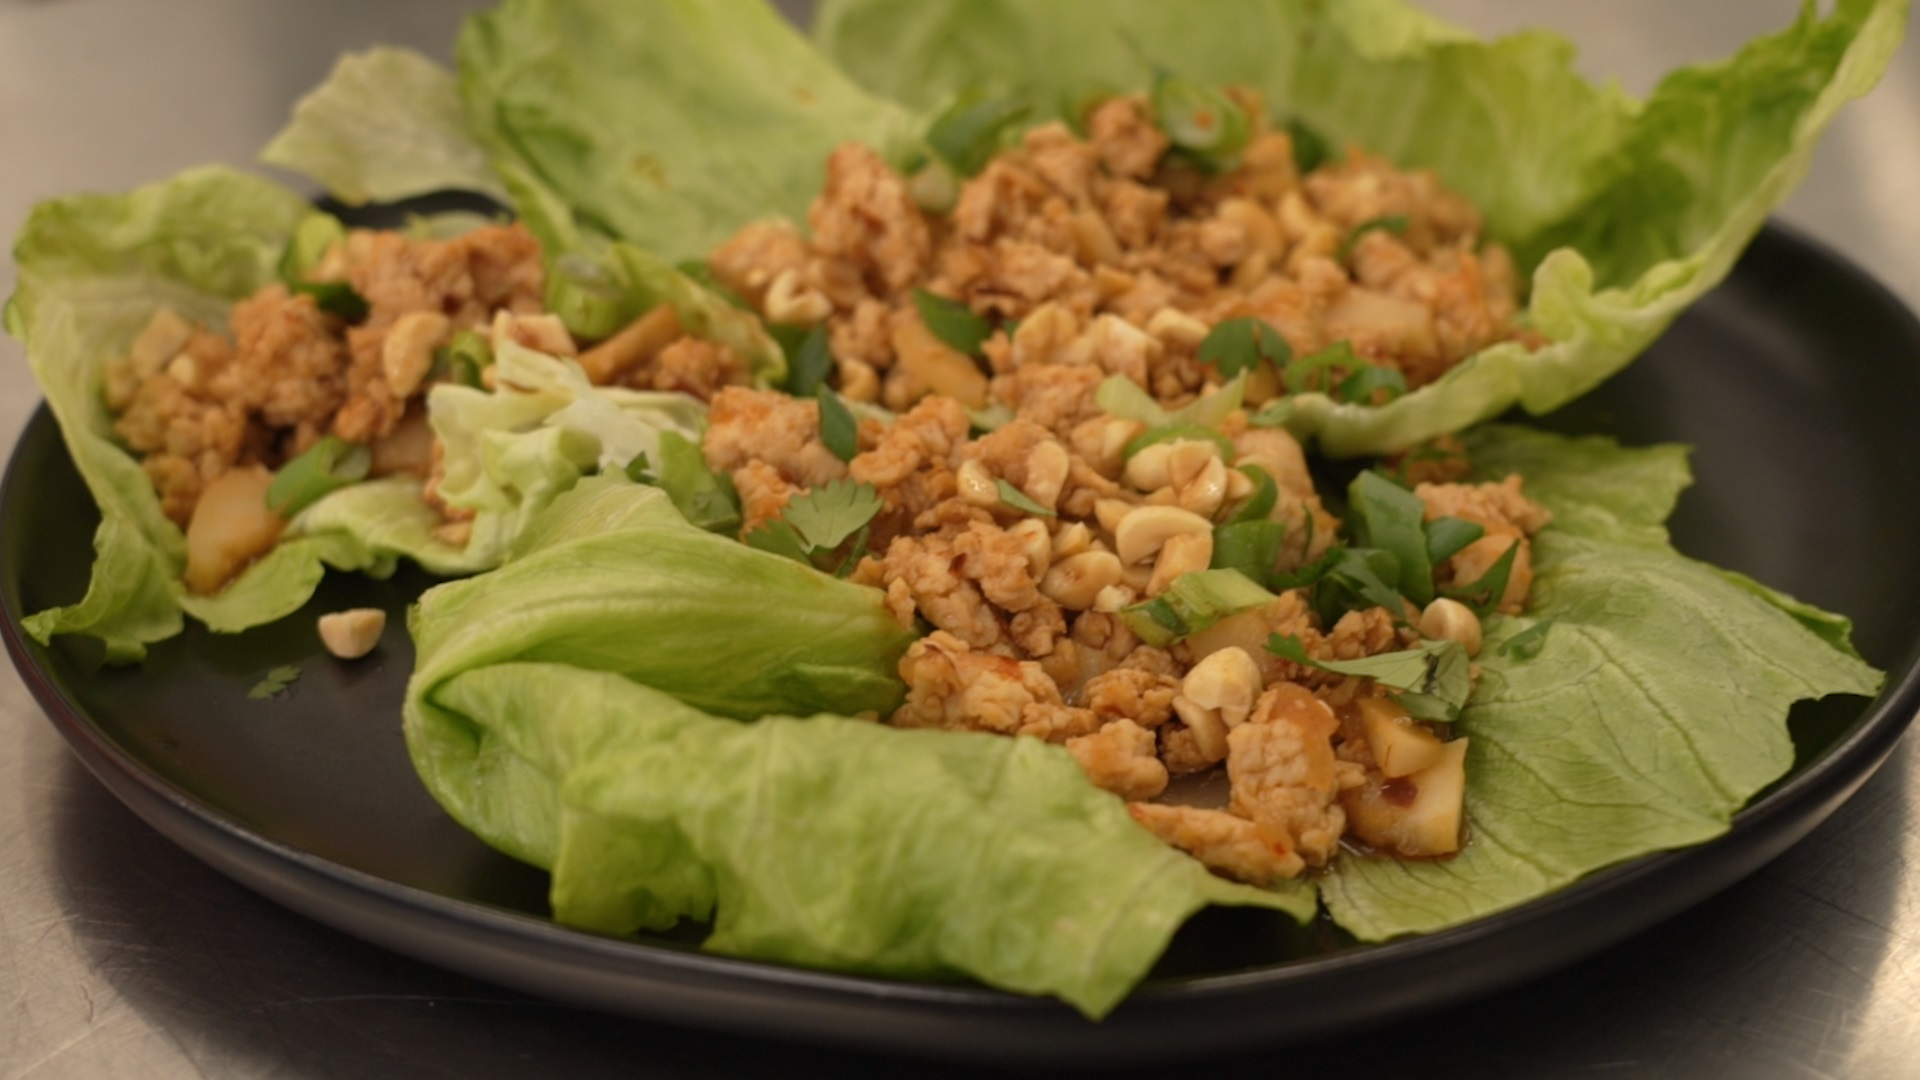 ground chicken and peanuts served on lettuce leaves